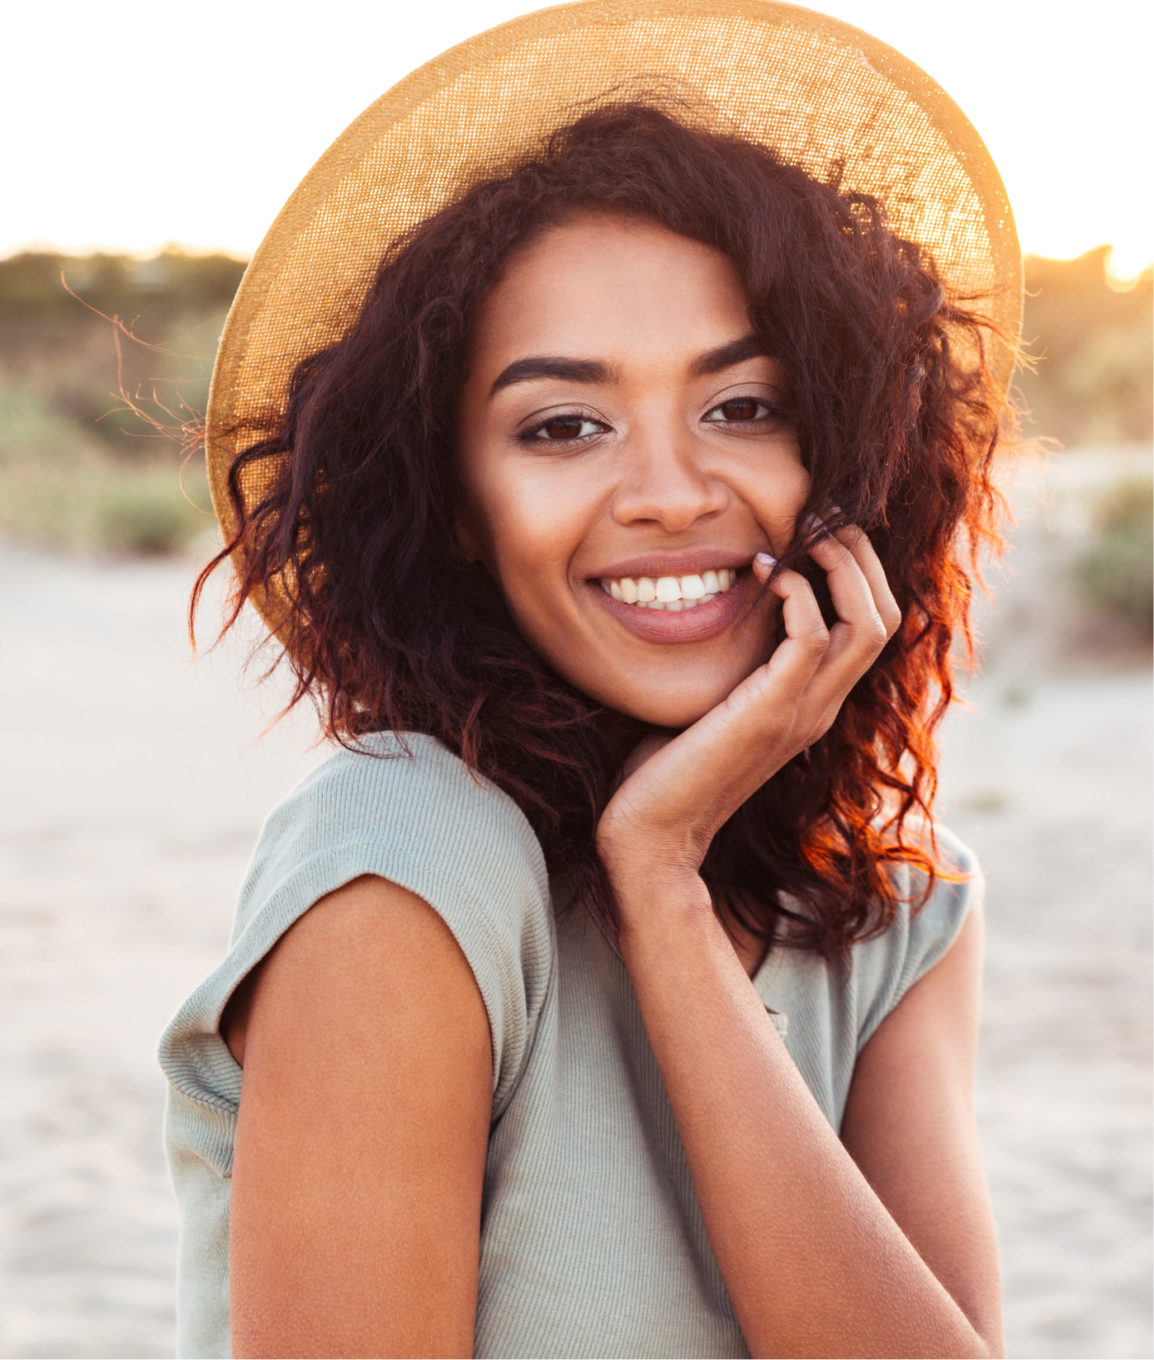 Smiling woman with great skin at the beach